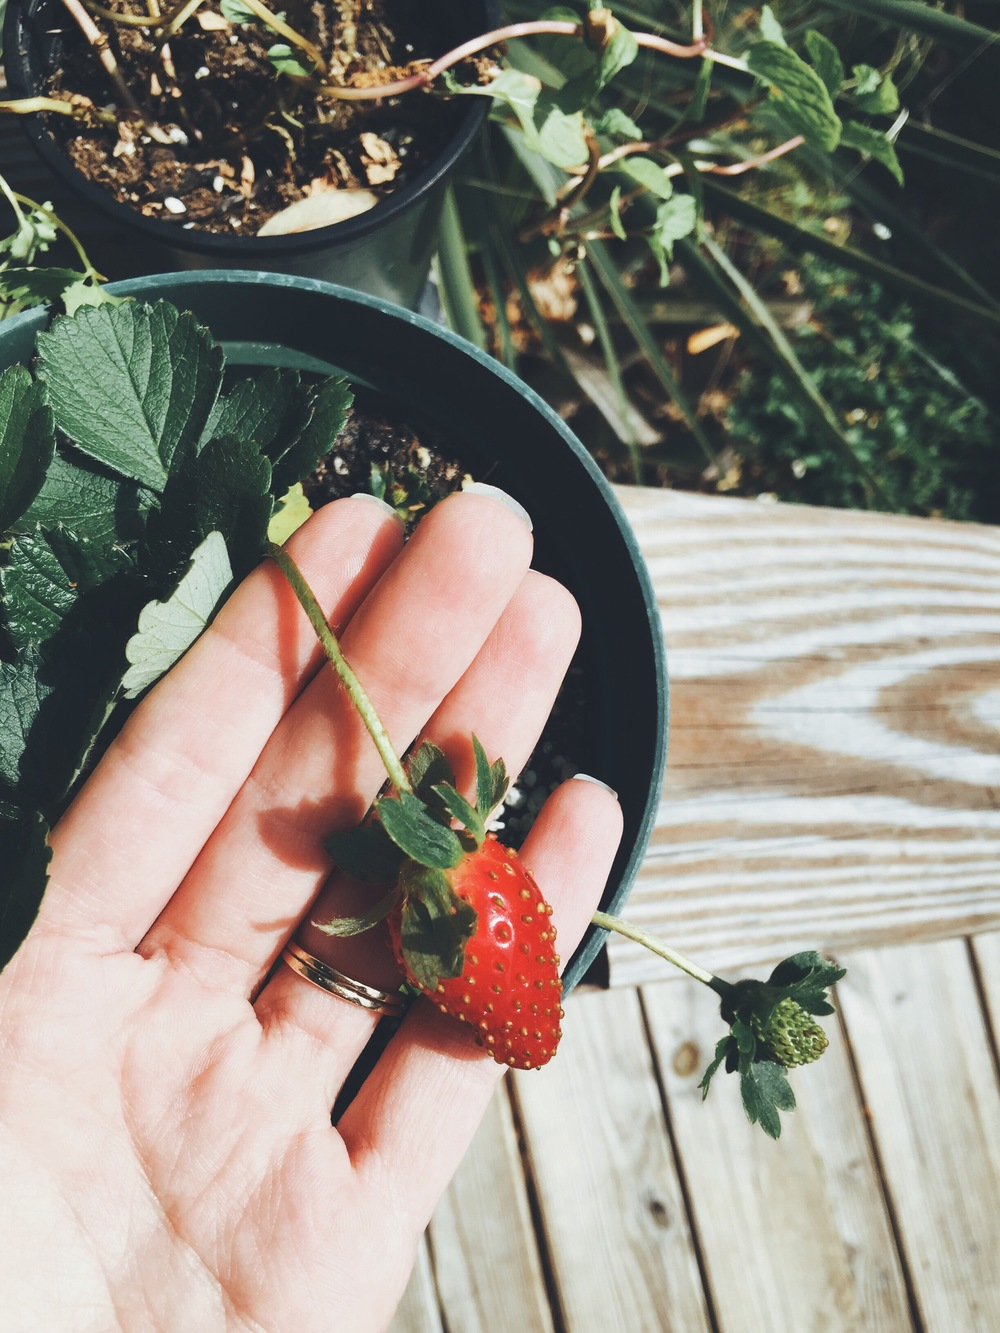 our first homegrown organic strawberry.